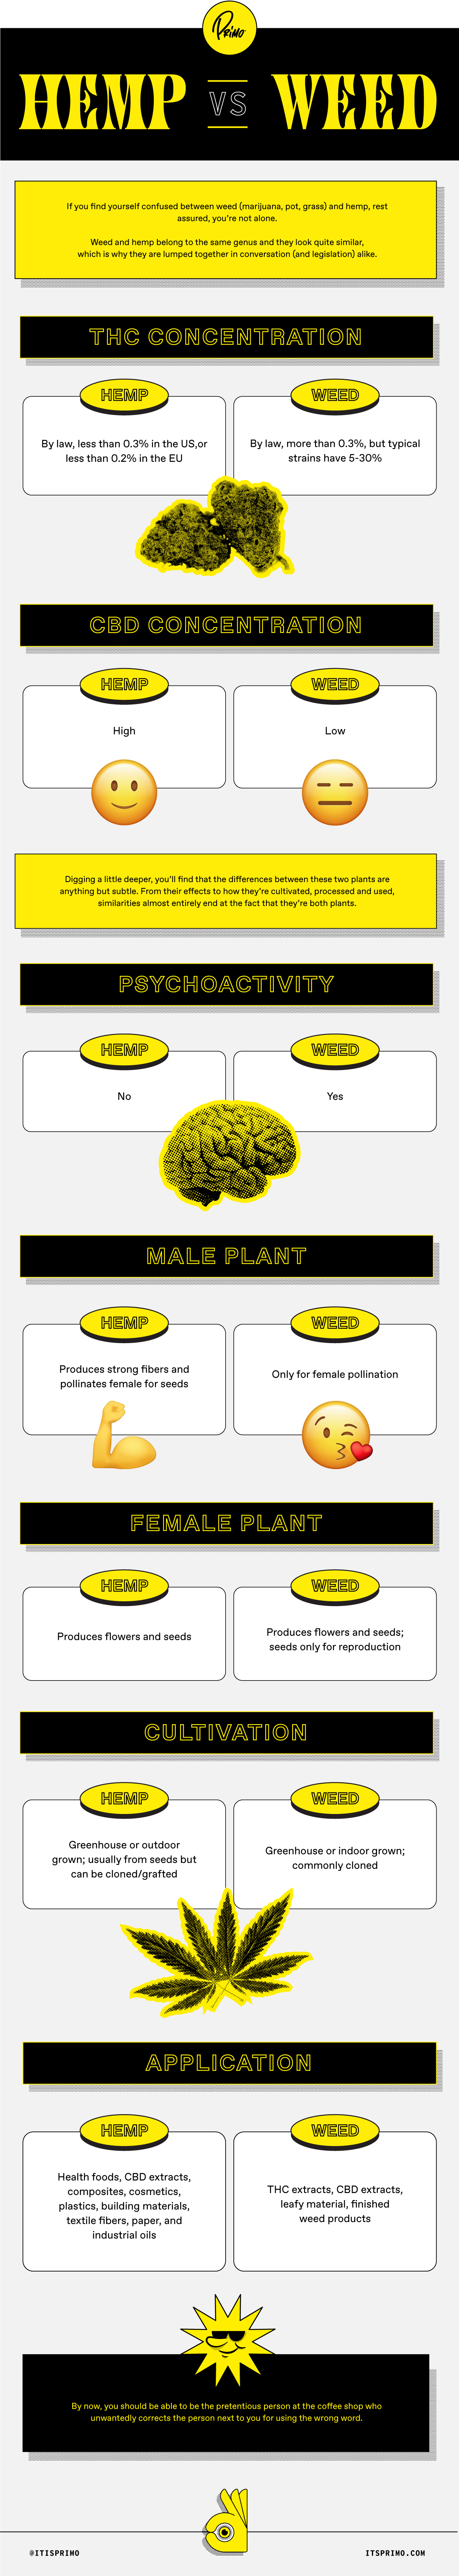 Weed and Hemp Infographic